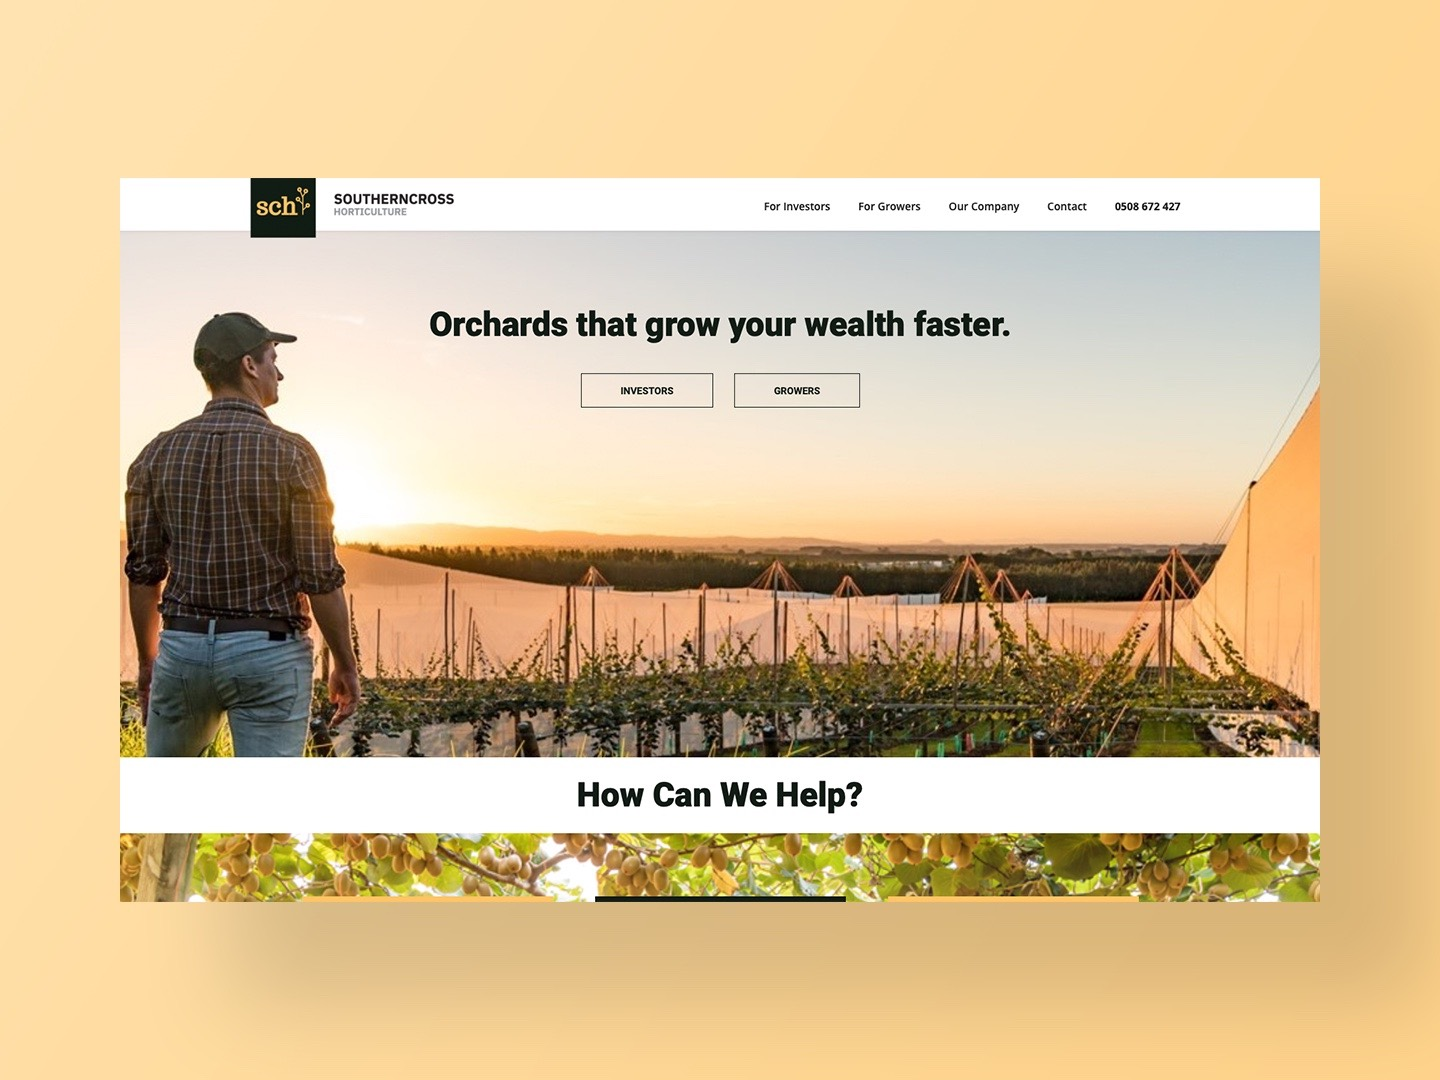 Southern Cross Horticultures new website by Neon Hive